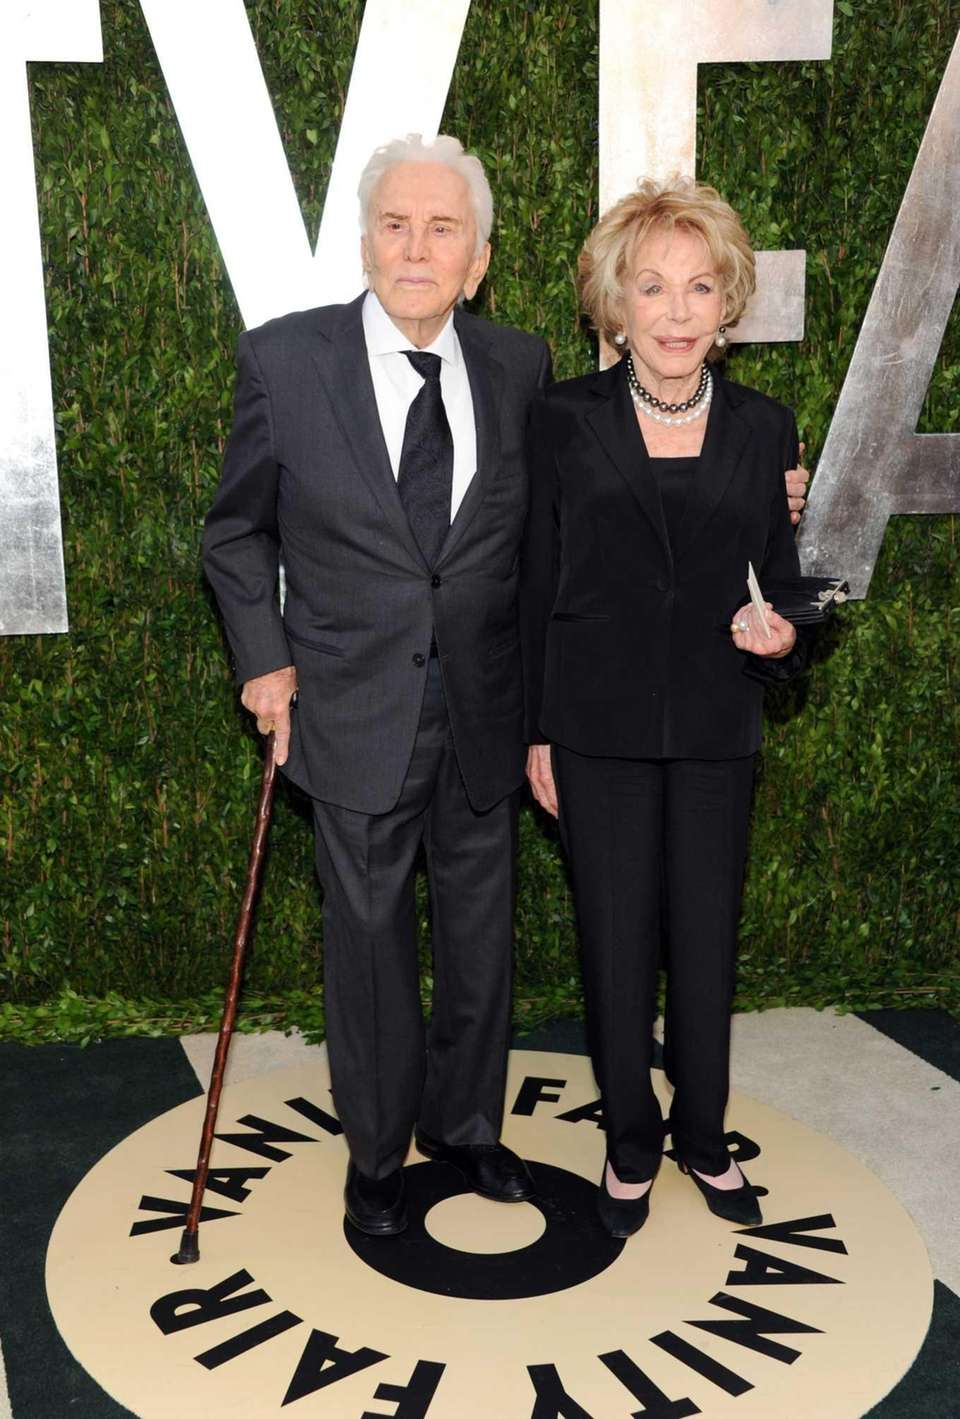 Douglas and his wife, Anne, arrive at the